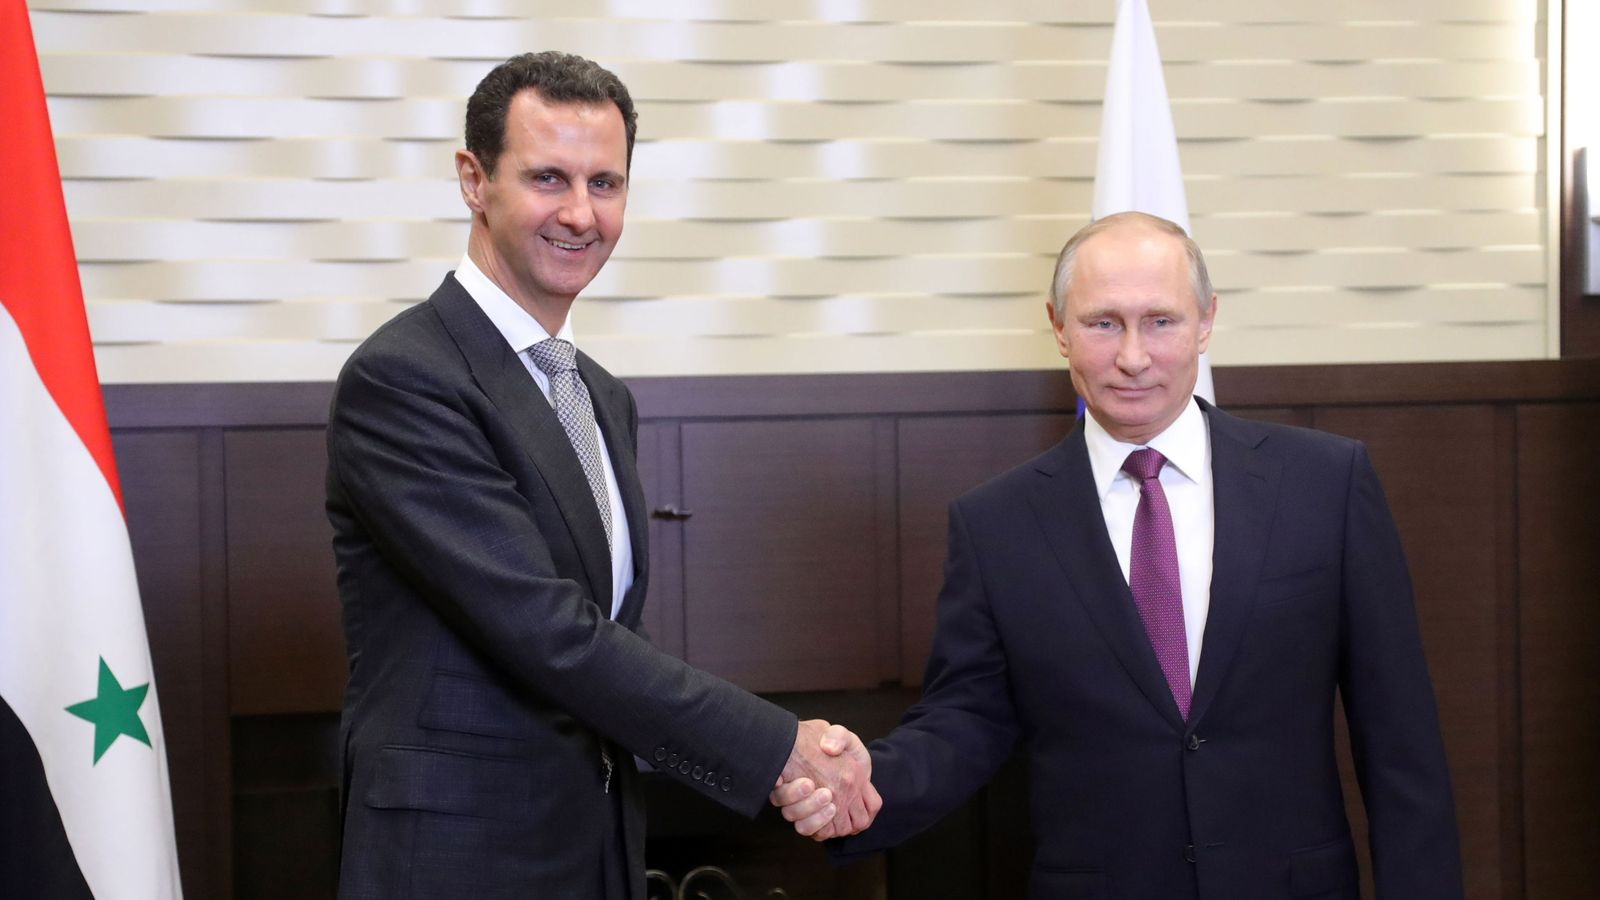 Syria military operation 'wrapping up', Putin tells Assad during Russia talks